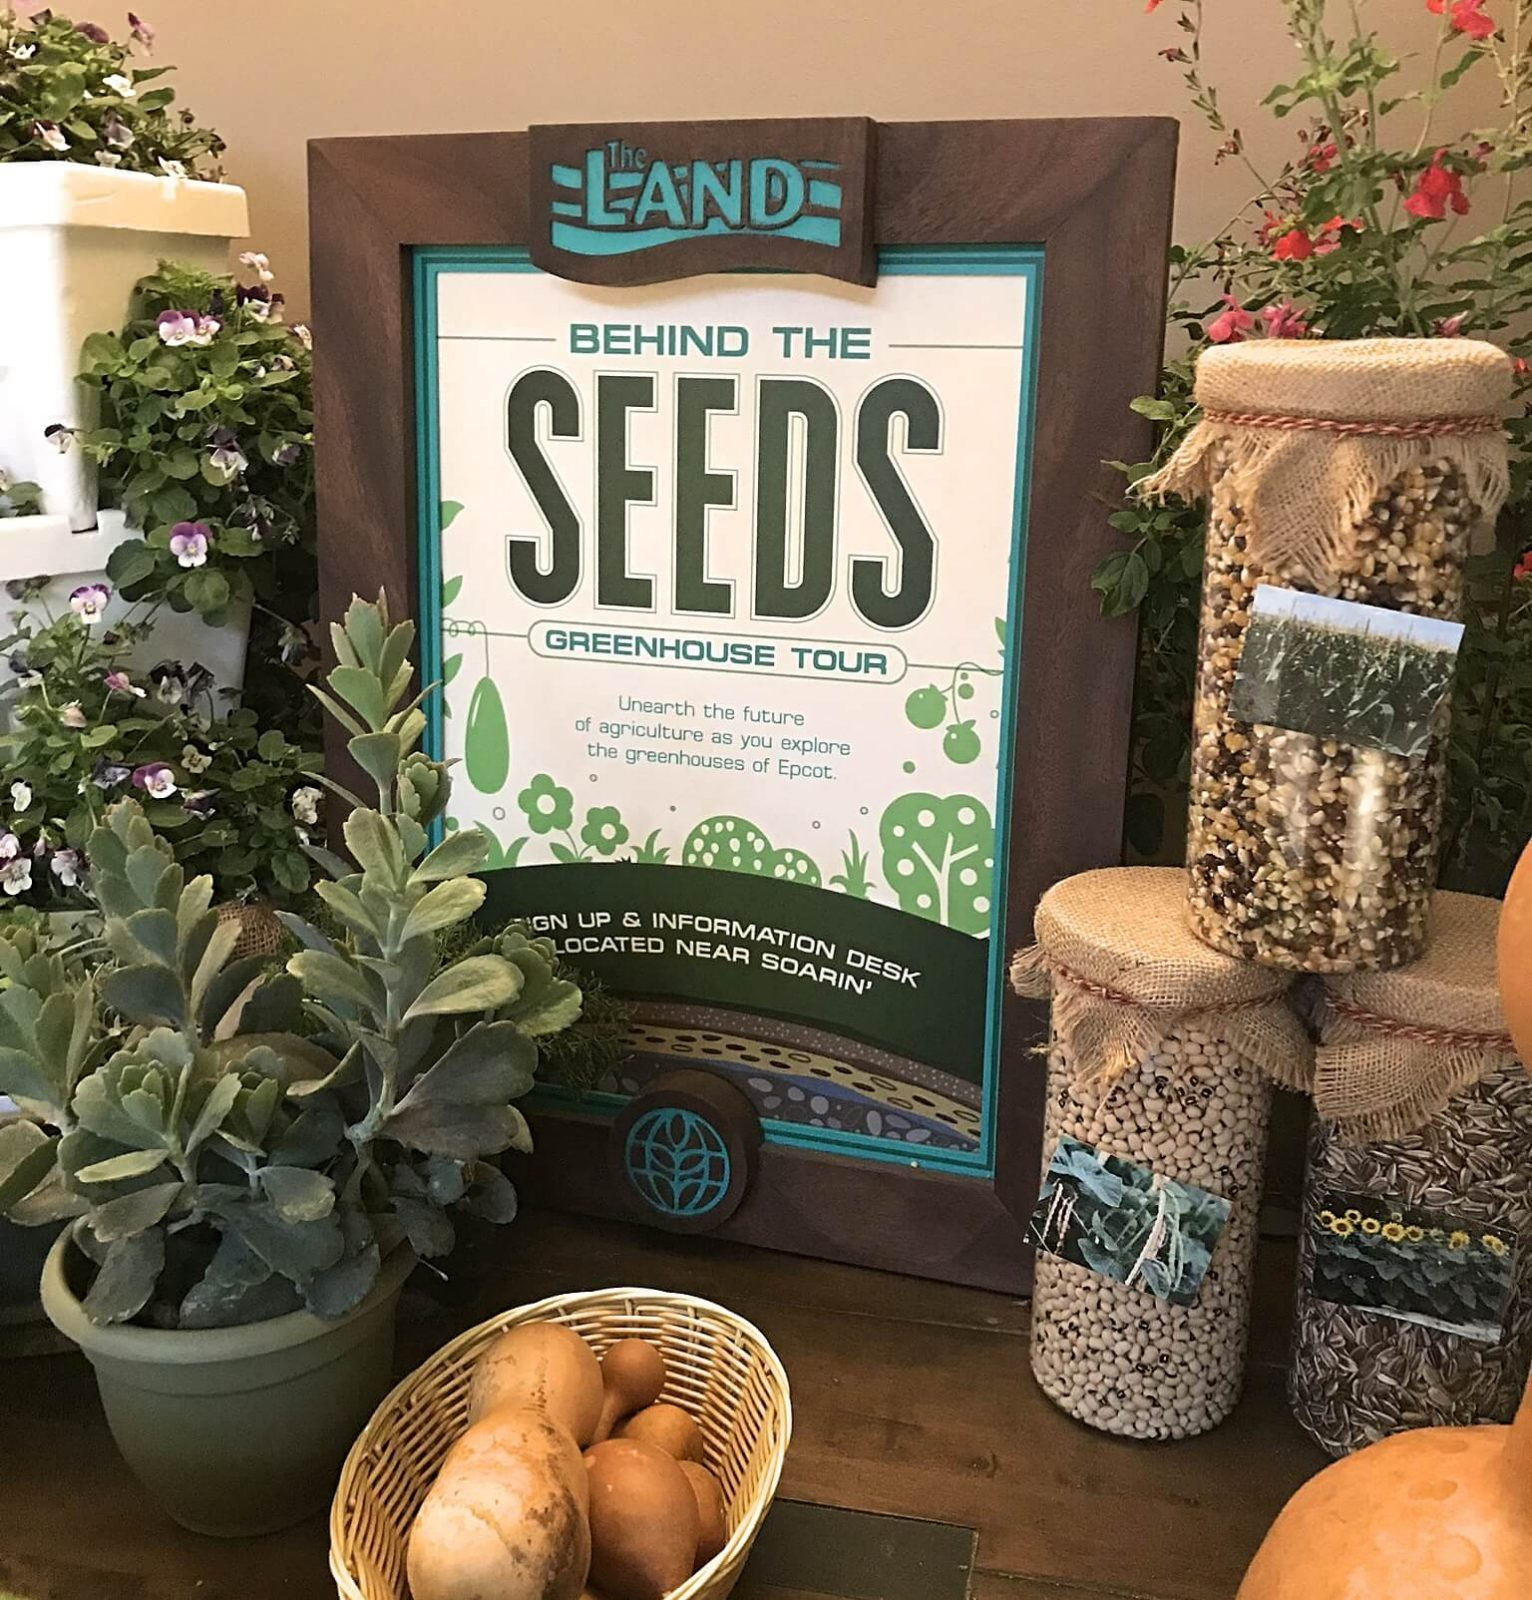 Behind the seeds greenhouse tour sign